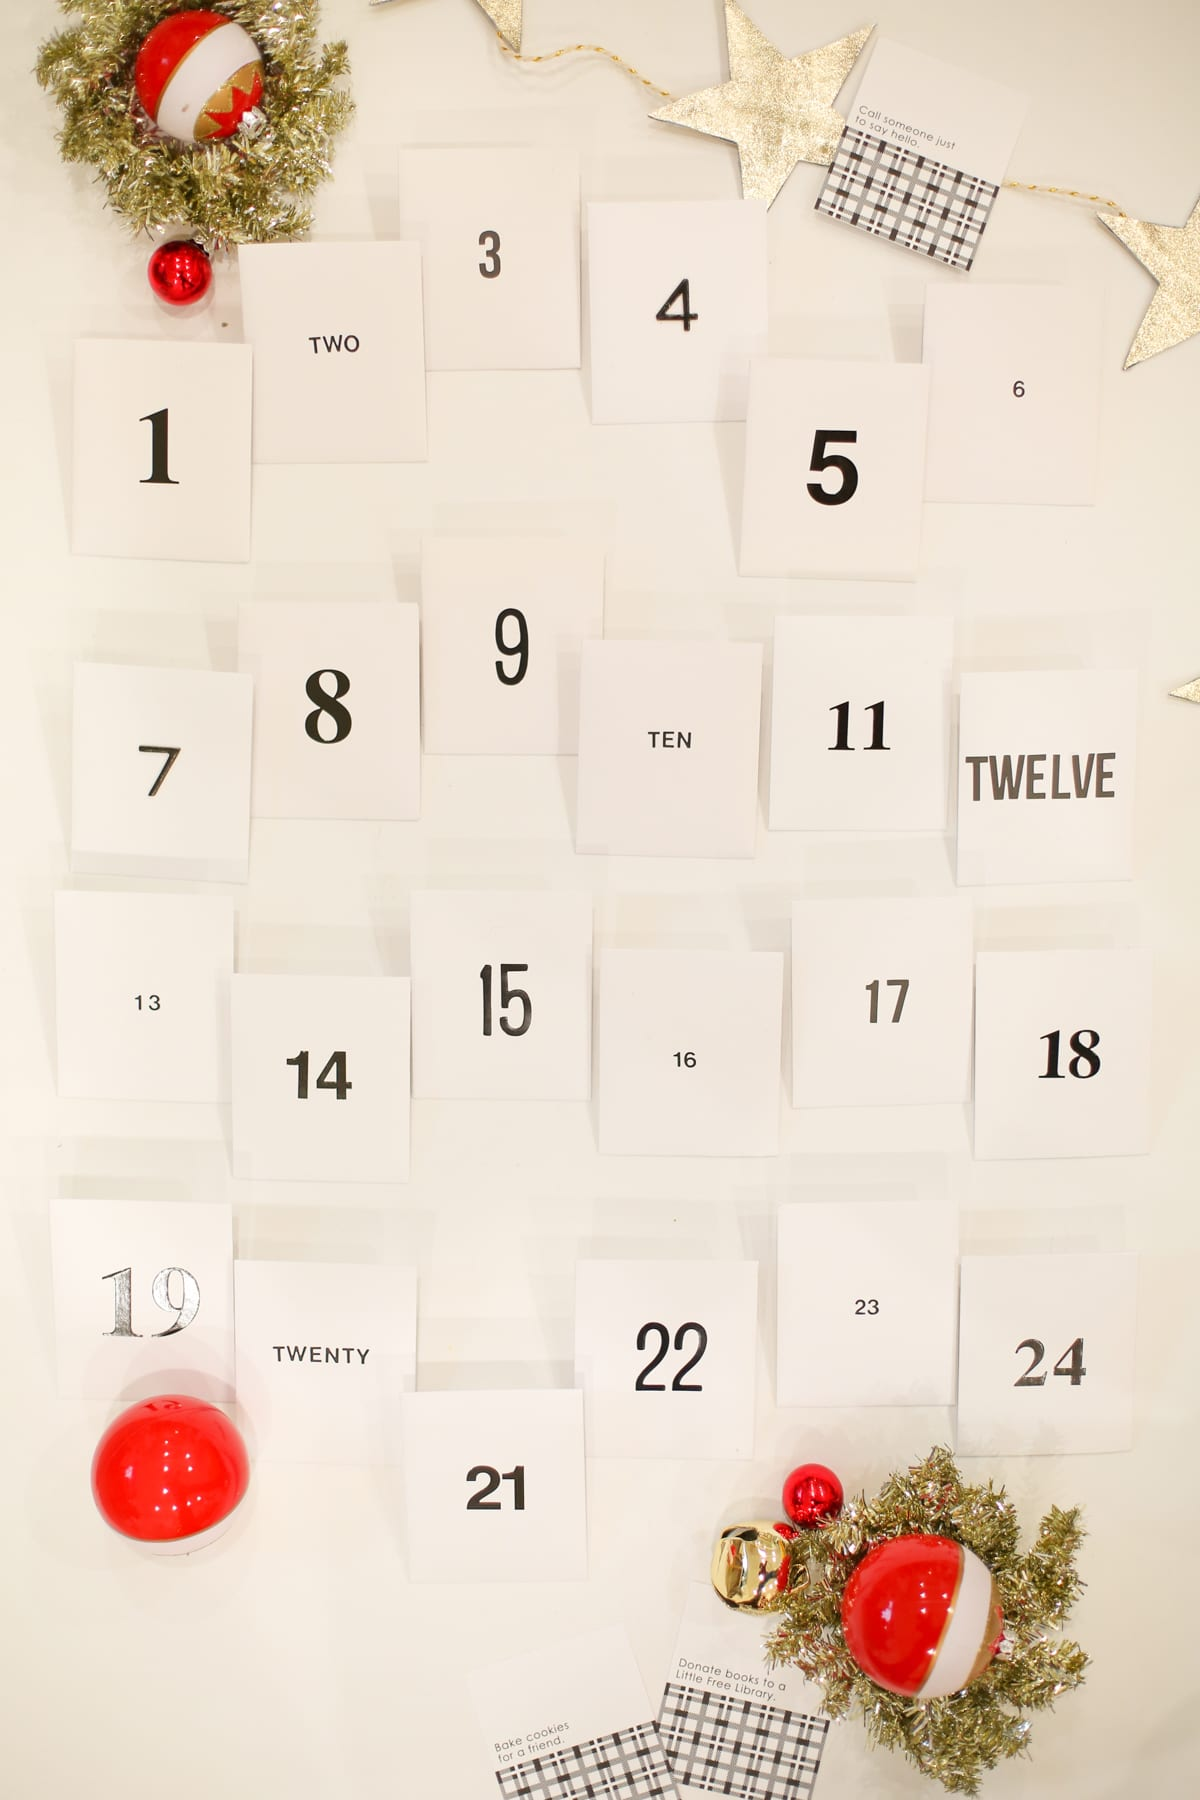 Free printable Acts of Kindness Advent Calendar